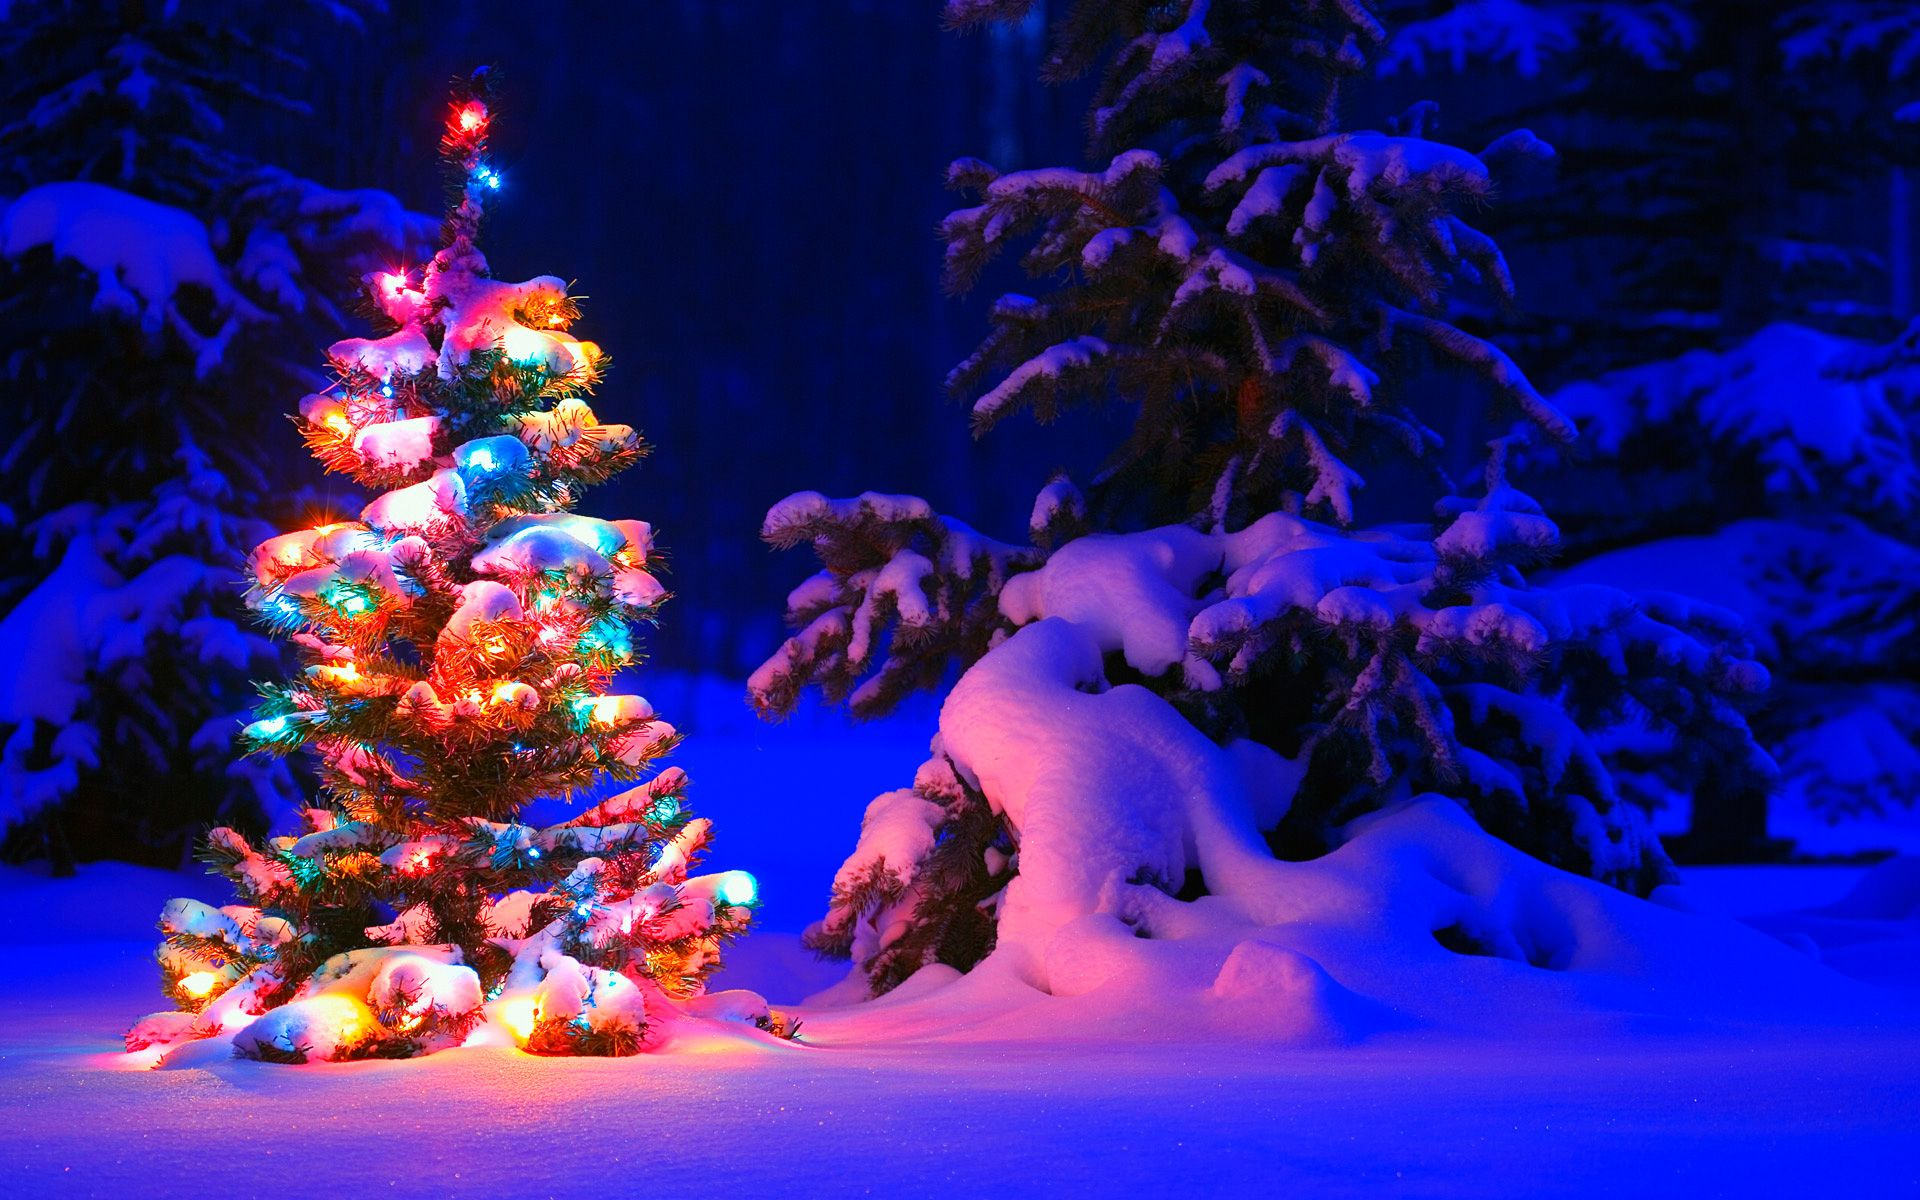 Hd Christmas Wallpaper.Christmas Desktop Wallpapers Top Free Christmas Desktop